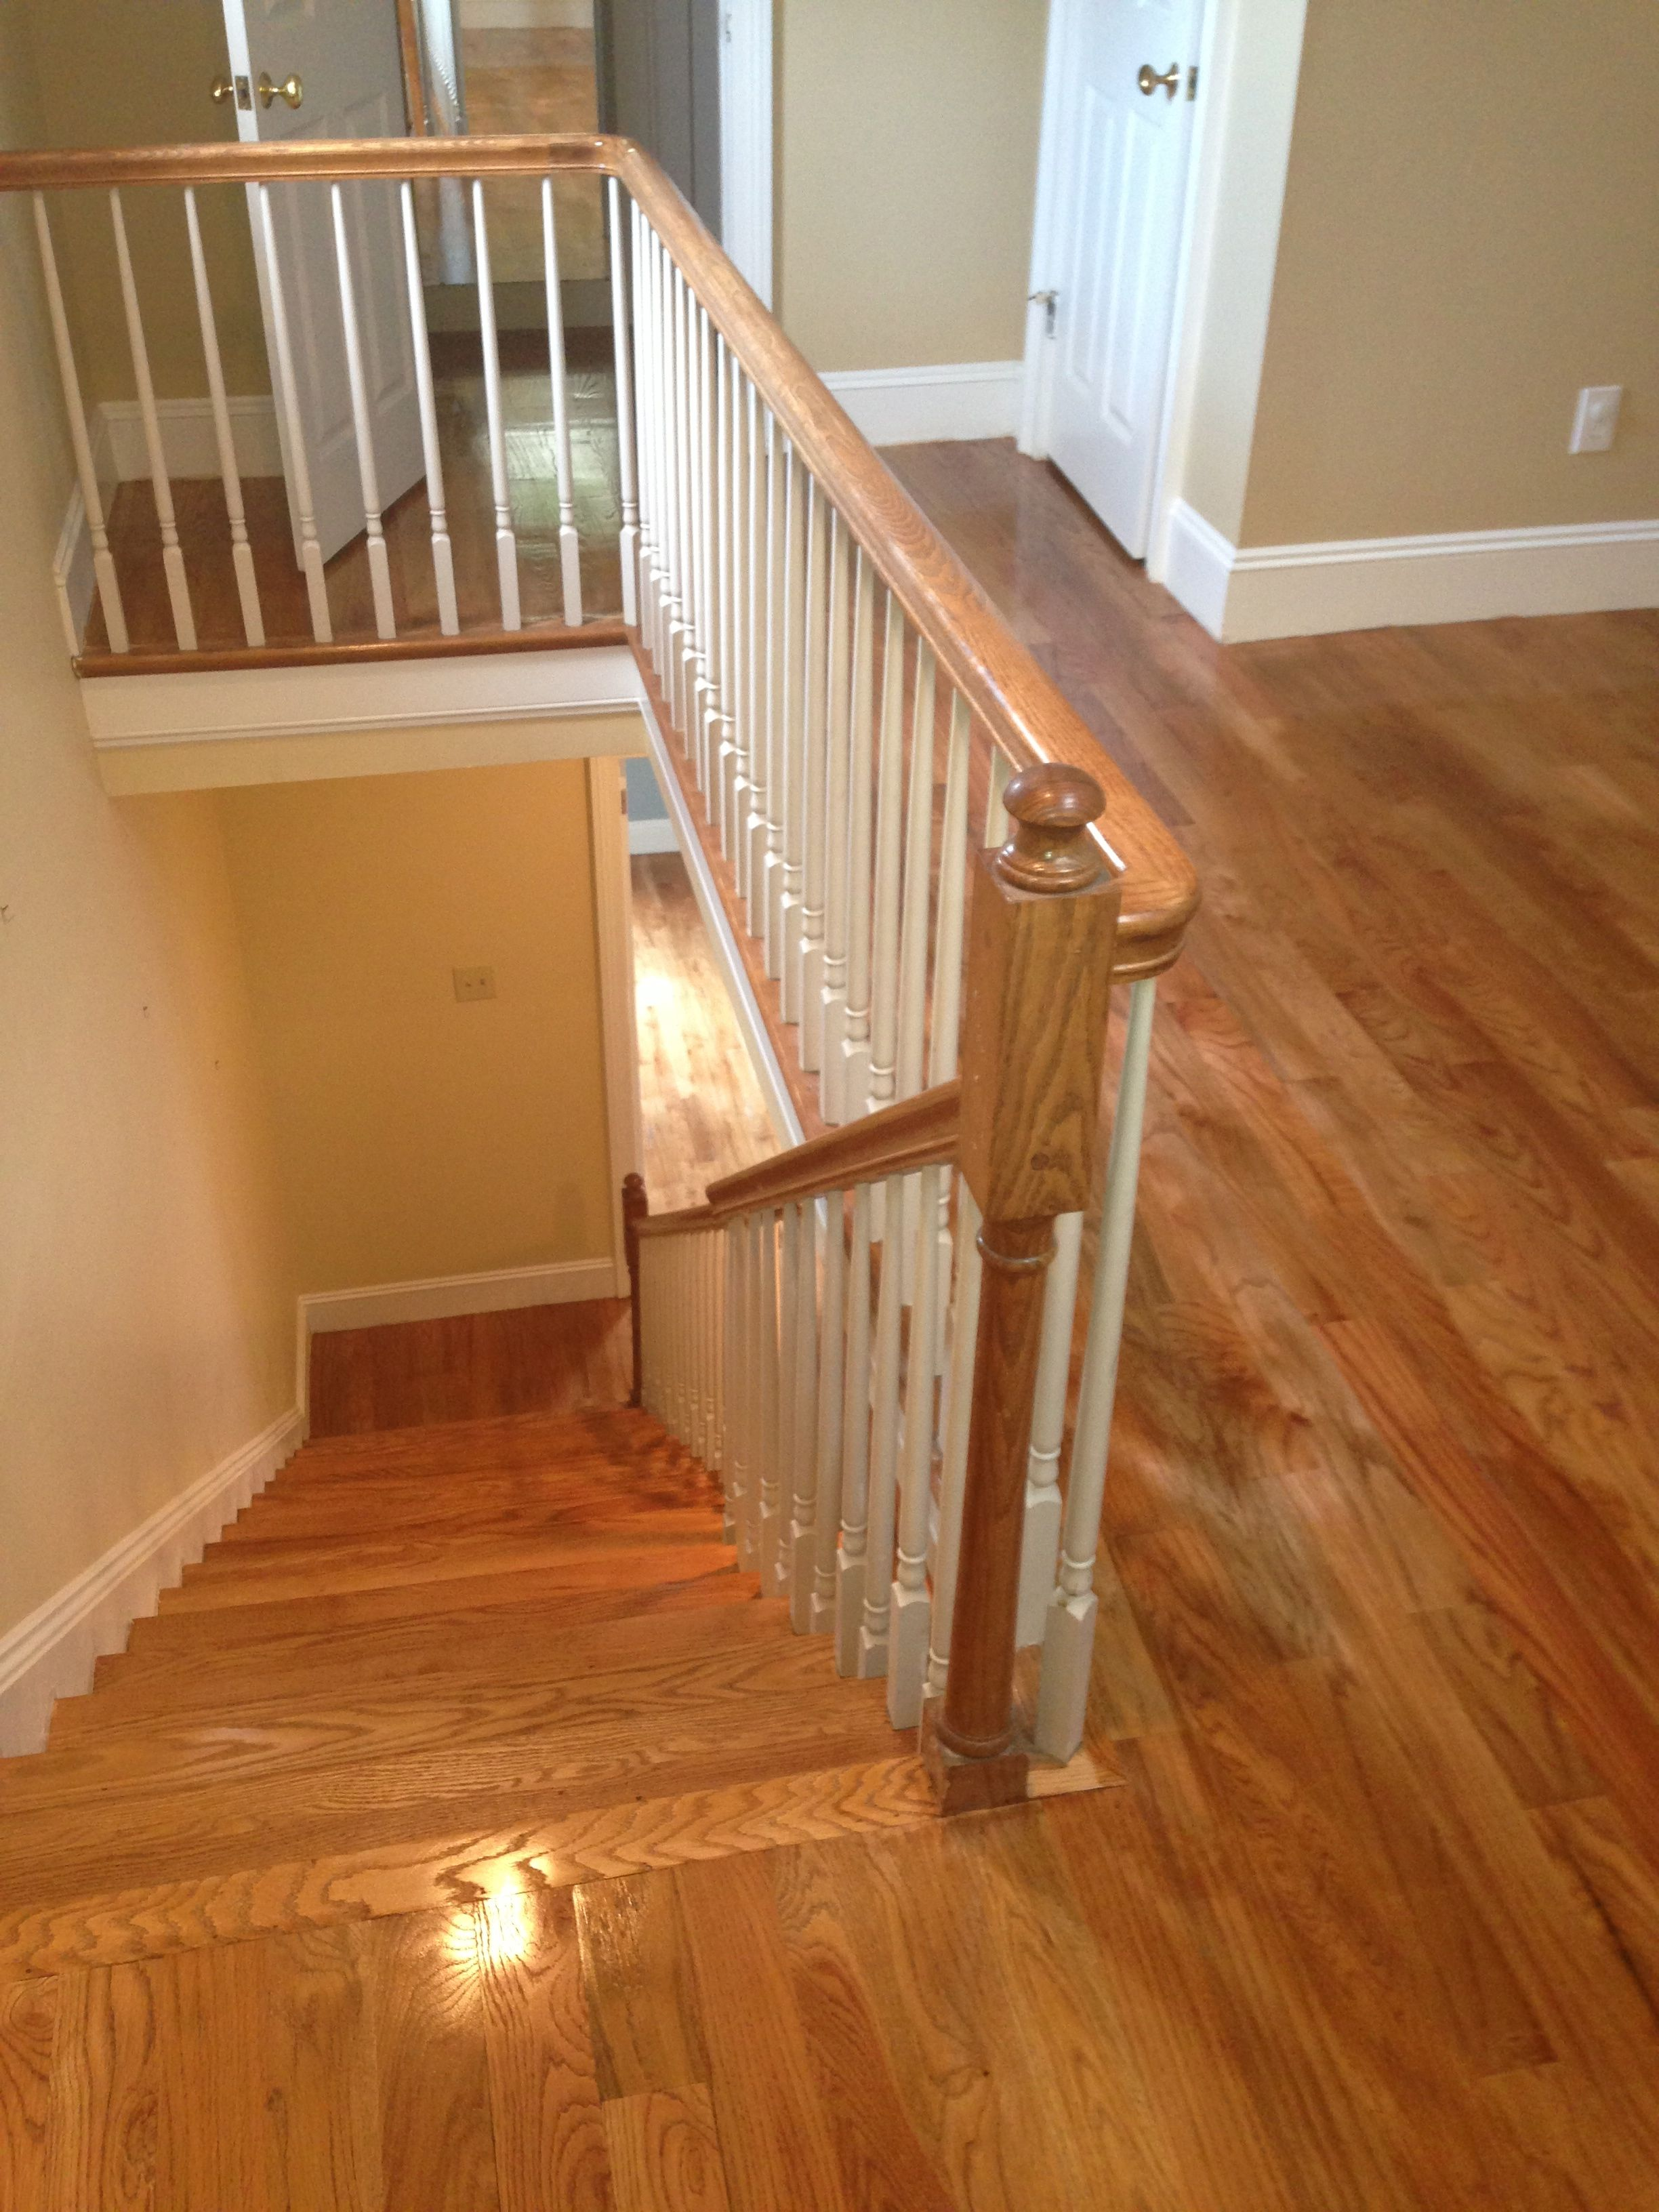 A photo of a staircase and upstairs balcony of newly polyurethaned red oak hardwood flooring.